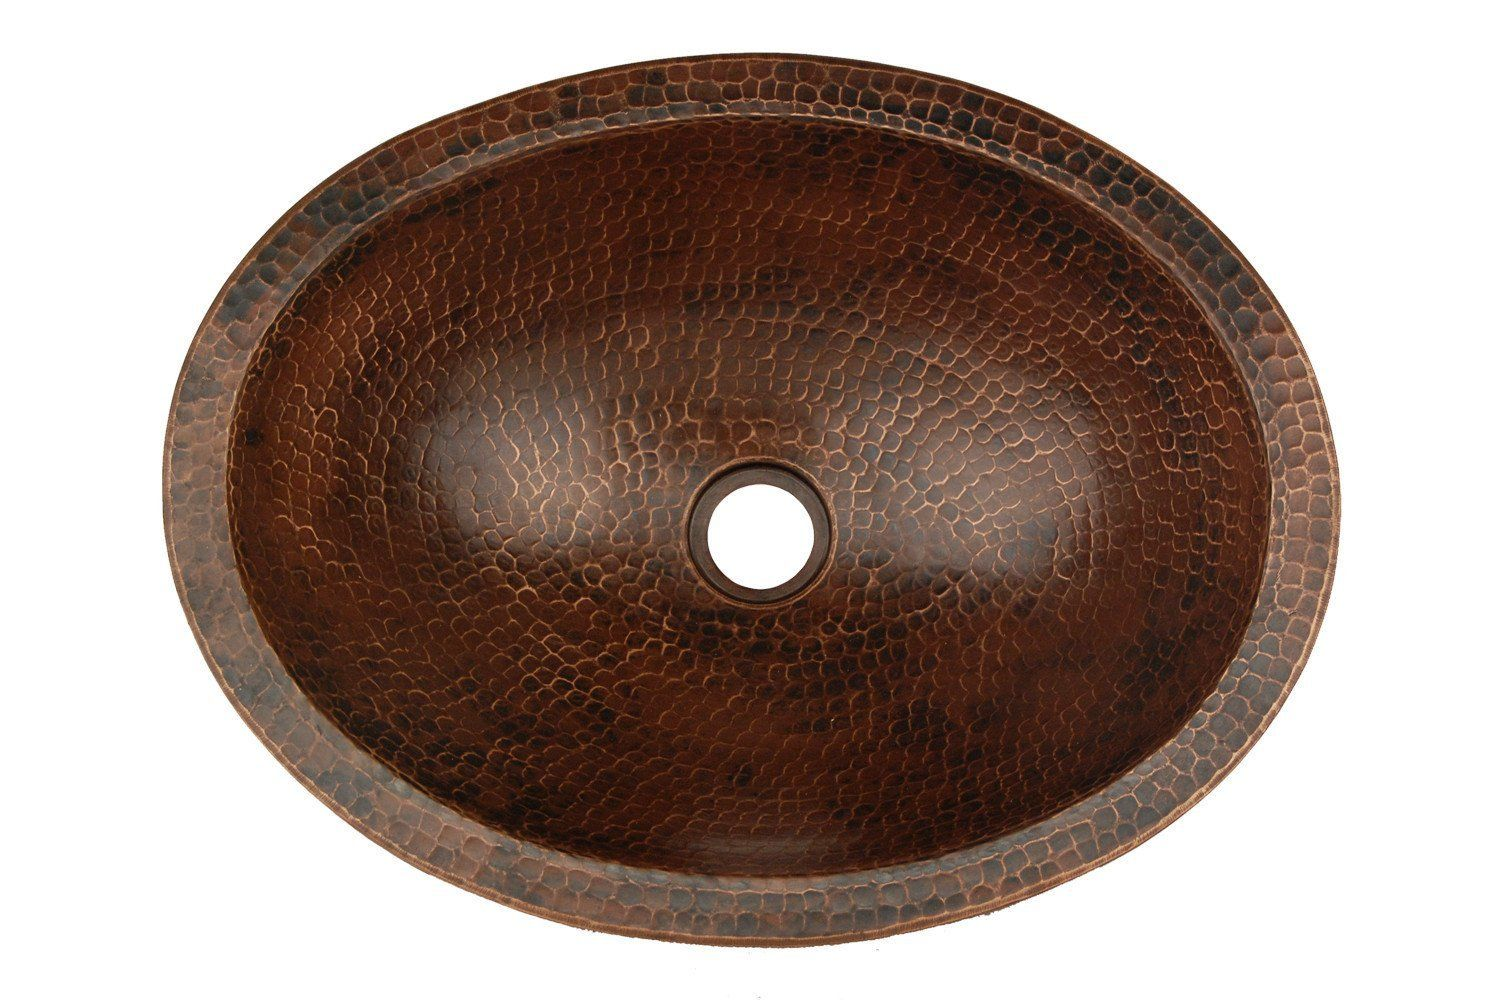 Compact Oval Skirted Vessel Hammered Copper Sink Bathroom Ideas